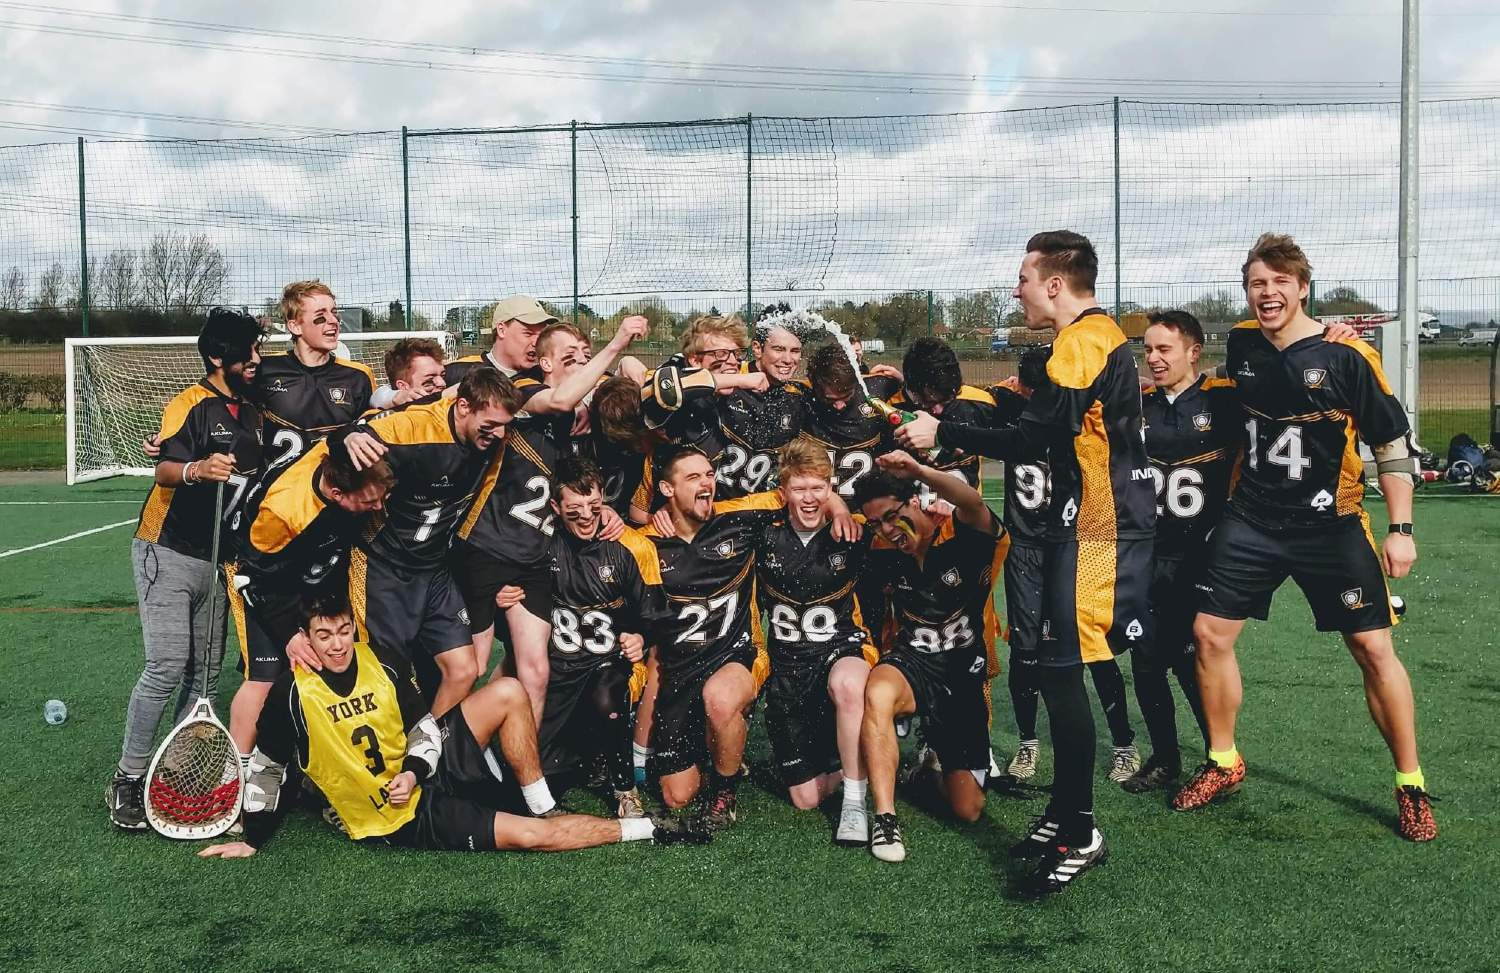 Men's Lacrosse 2s seal promotion in style